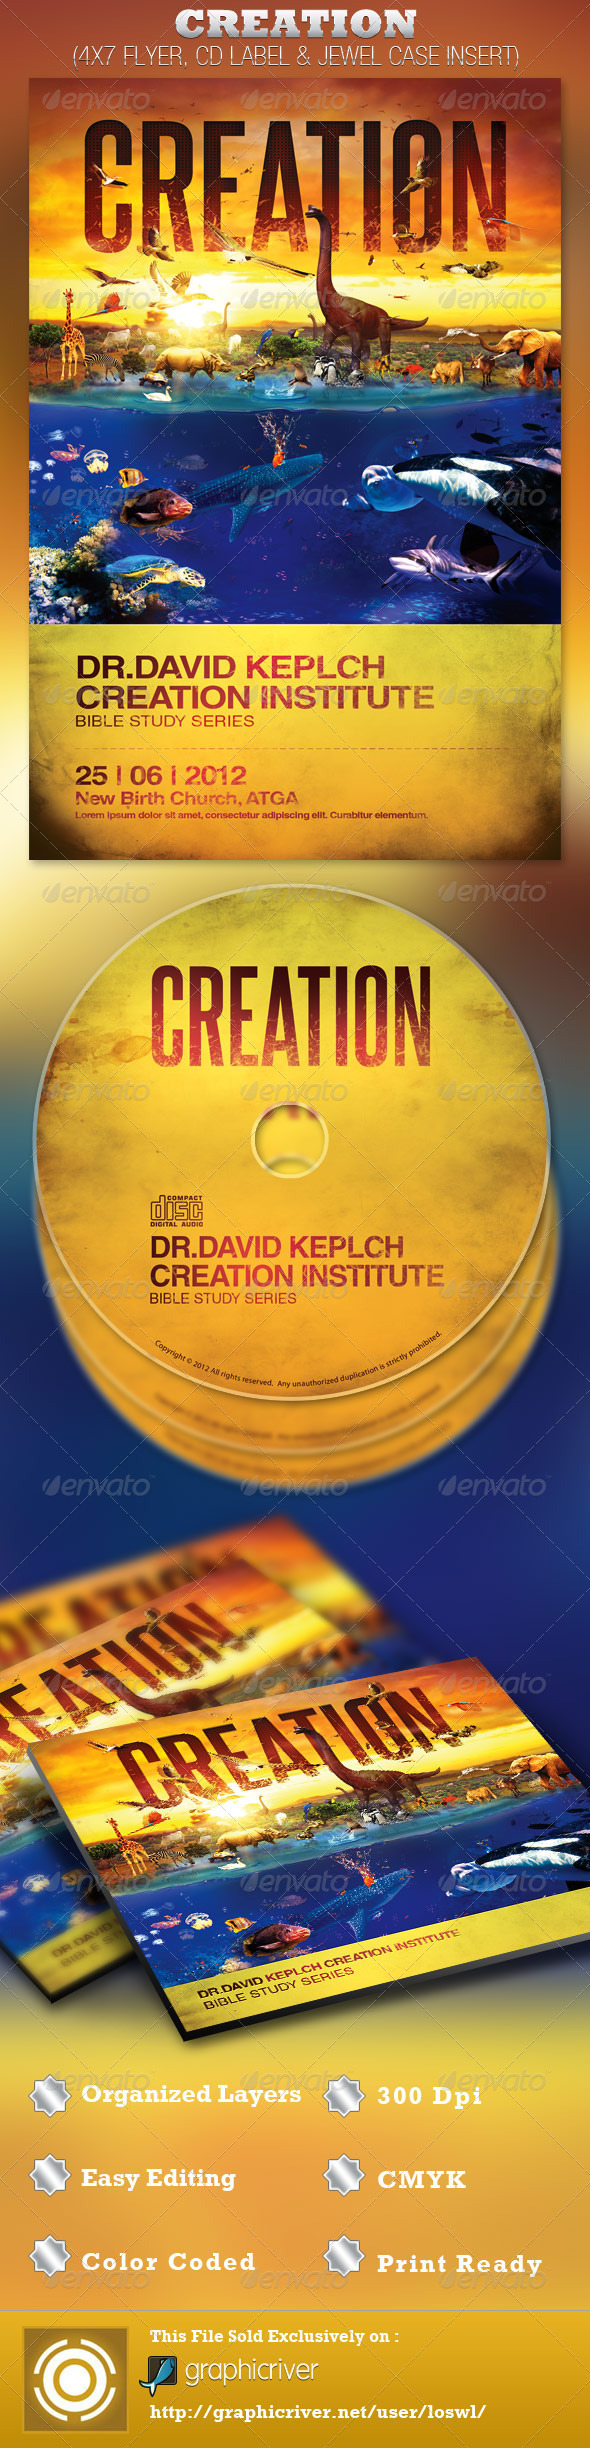 Creation Church Flyer and CD Template - Church Flyers